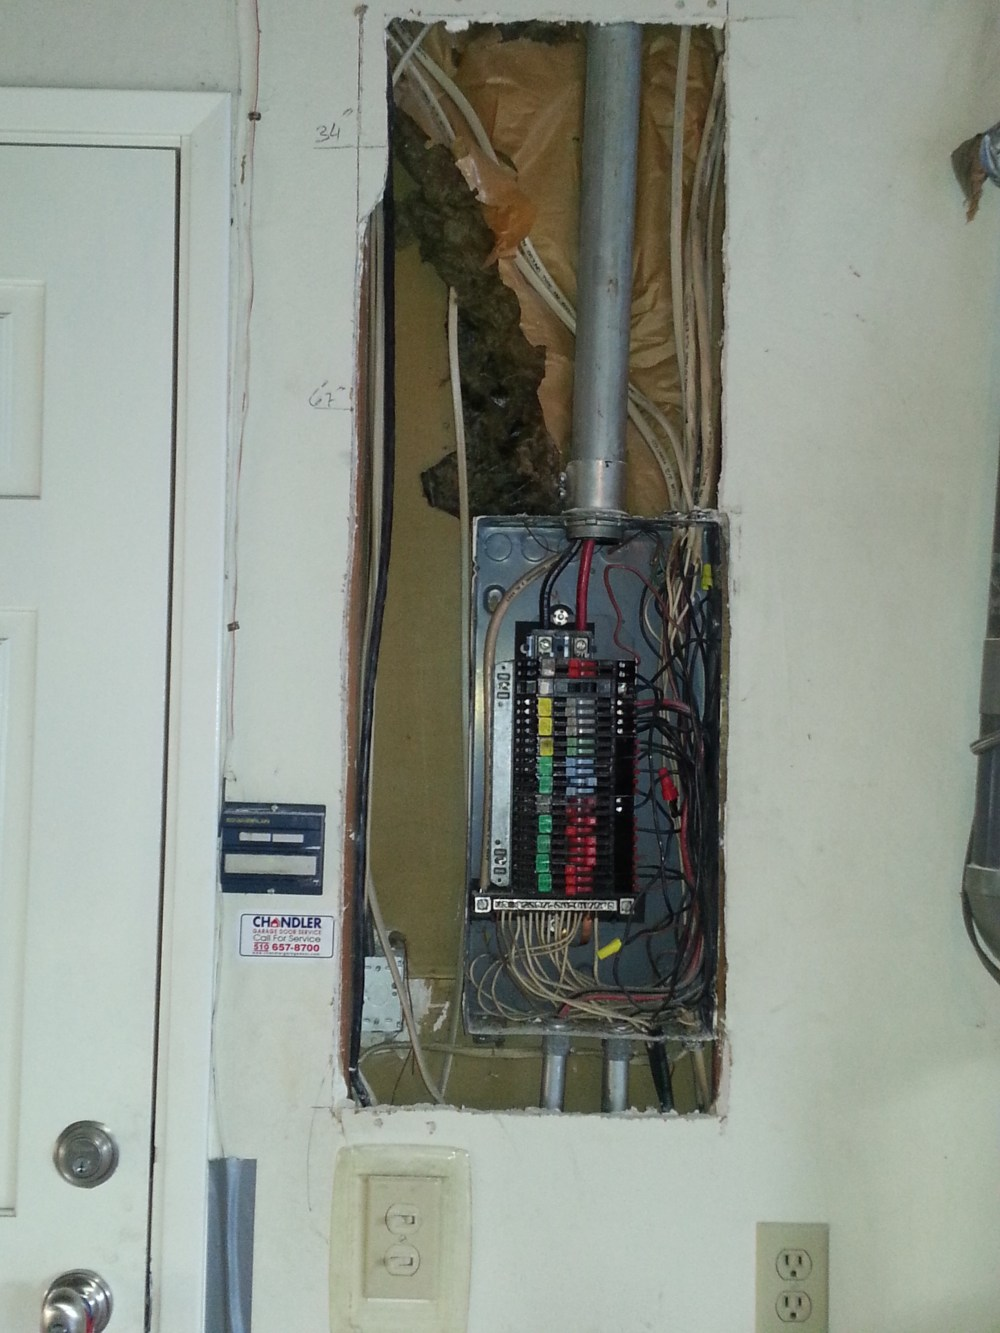 medium resolution of zinsco fire hazard panel to be replaced with 200amp rated square d panel in